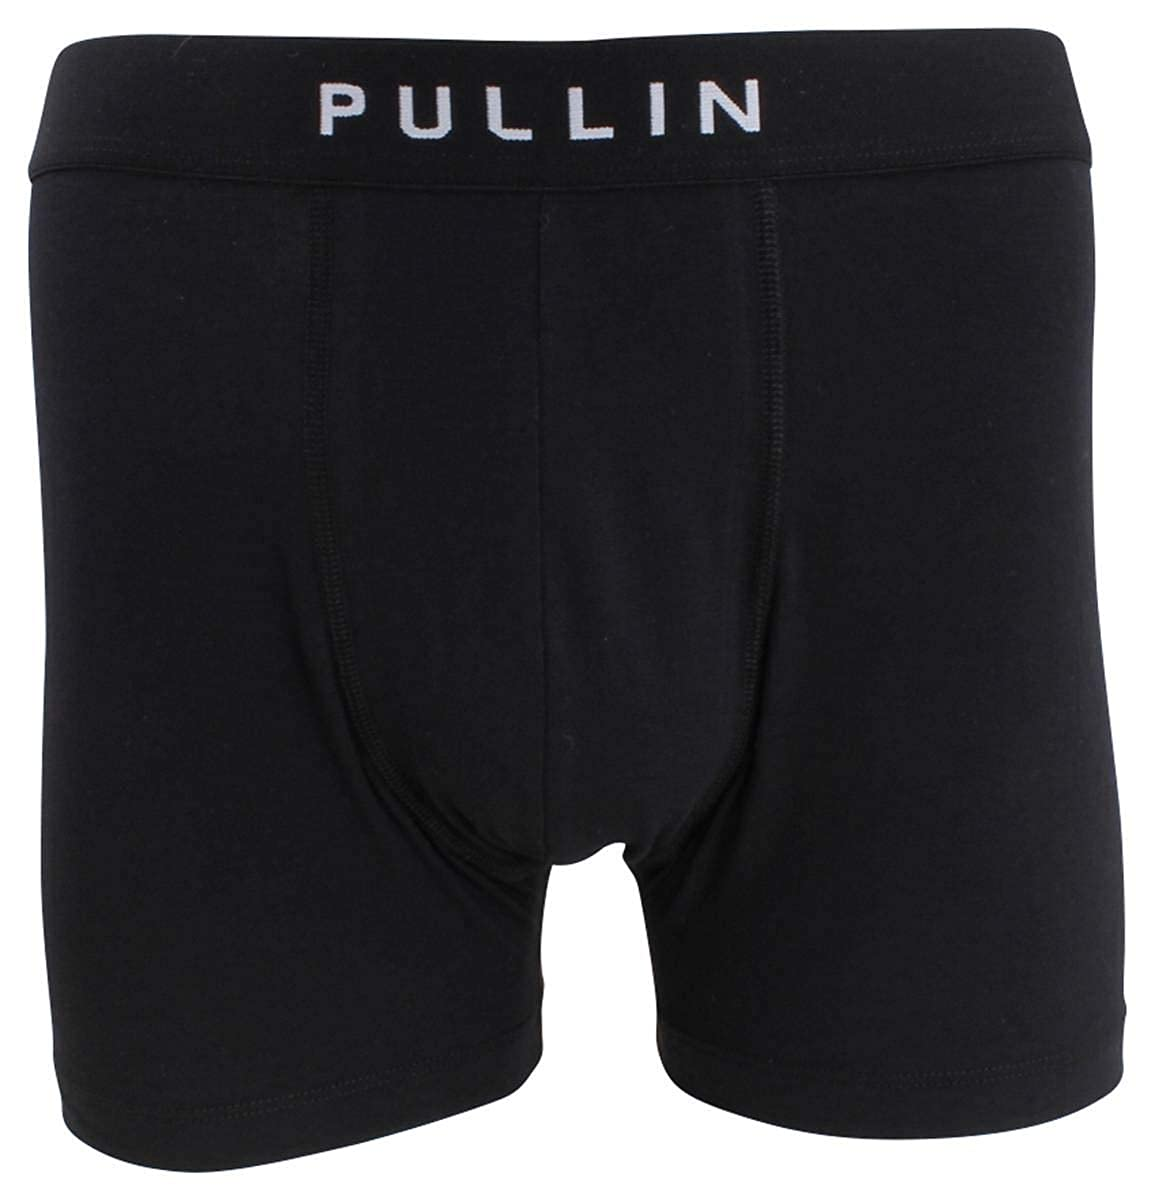 TALLA XS. Pull-in Bóxers - para Hombre